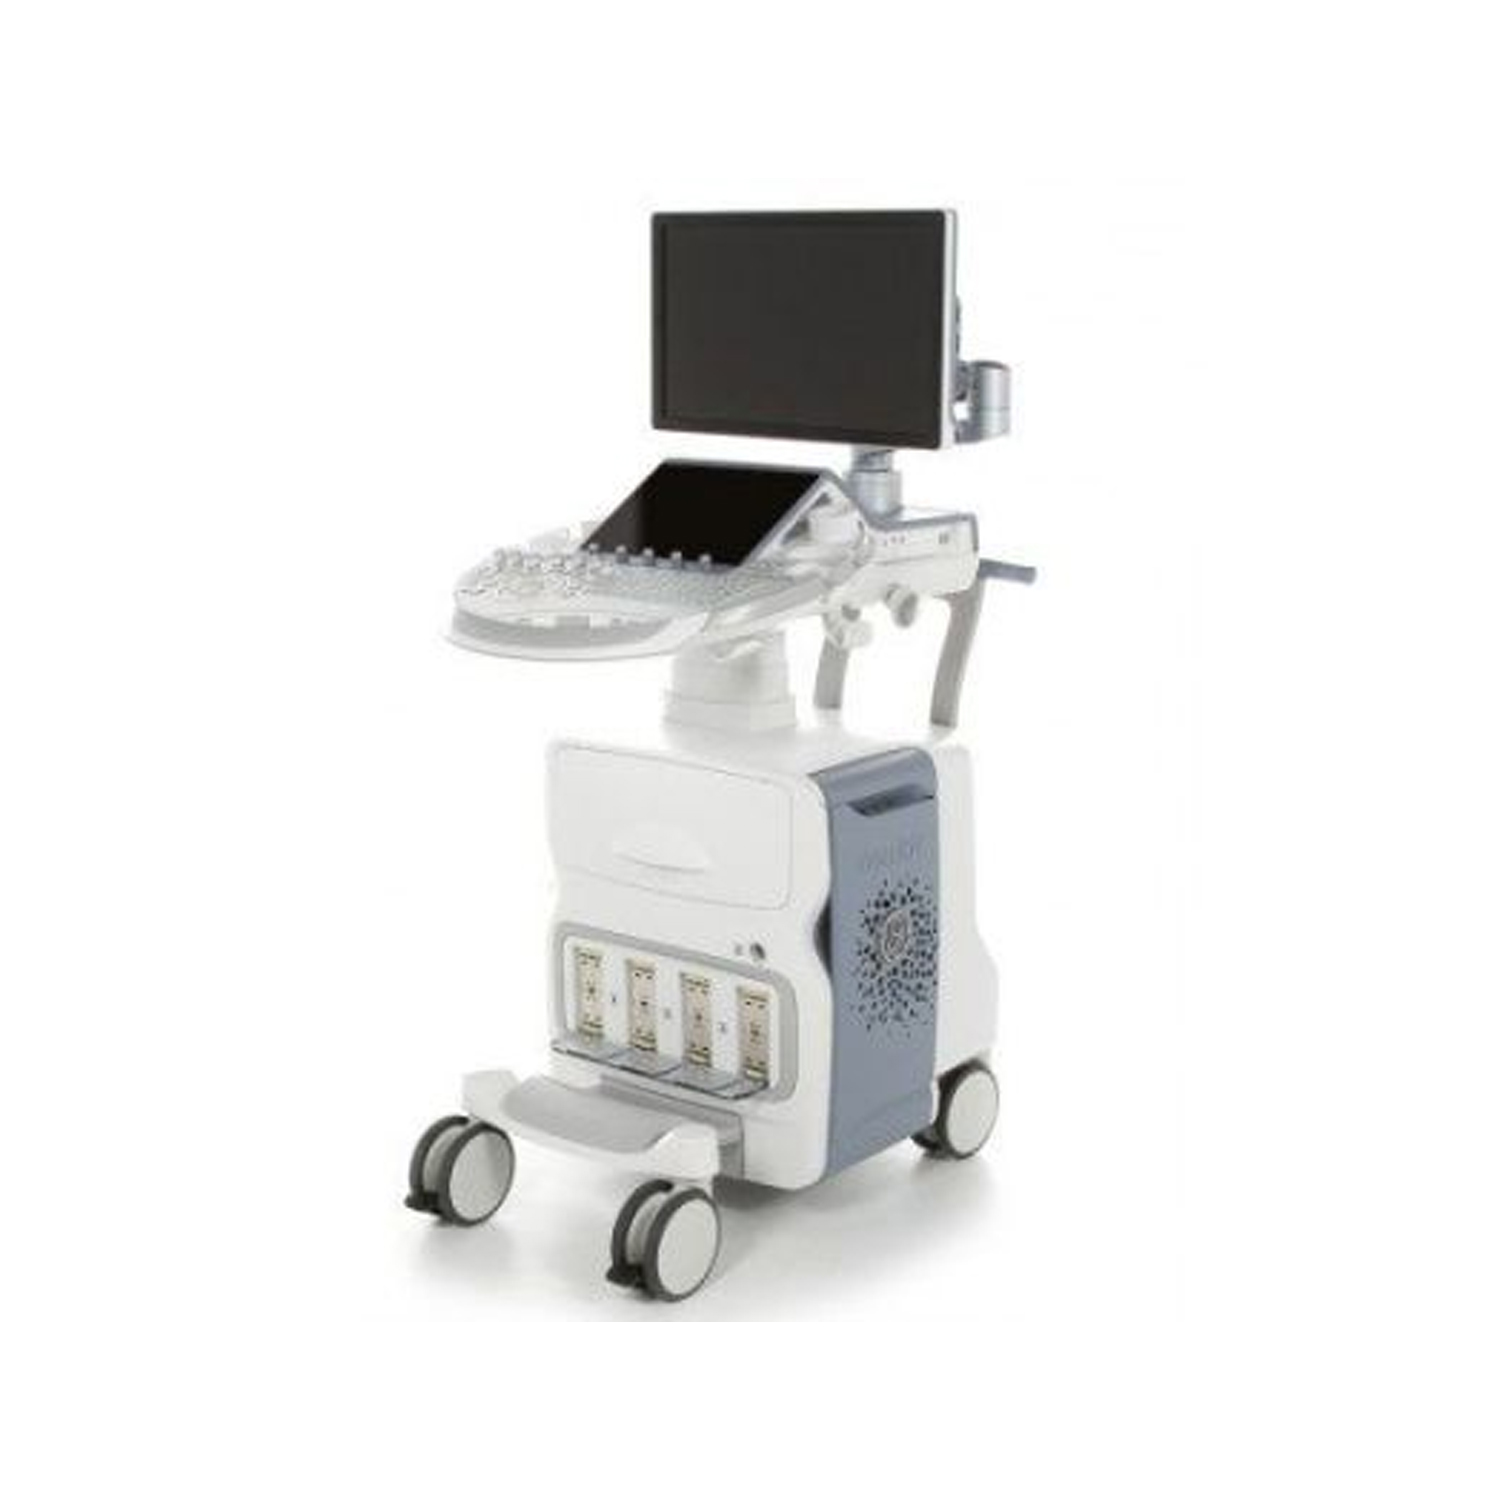 GE Voluson E10 Ultrasound Machine